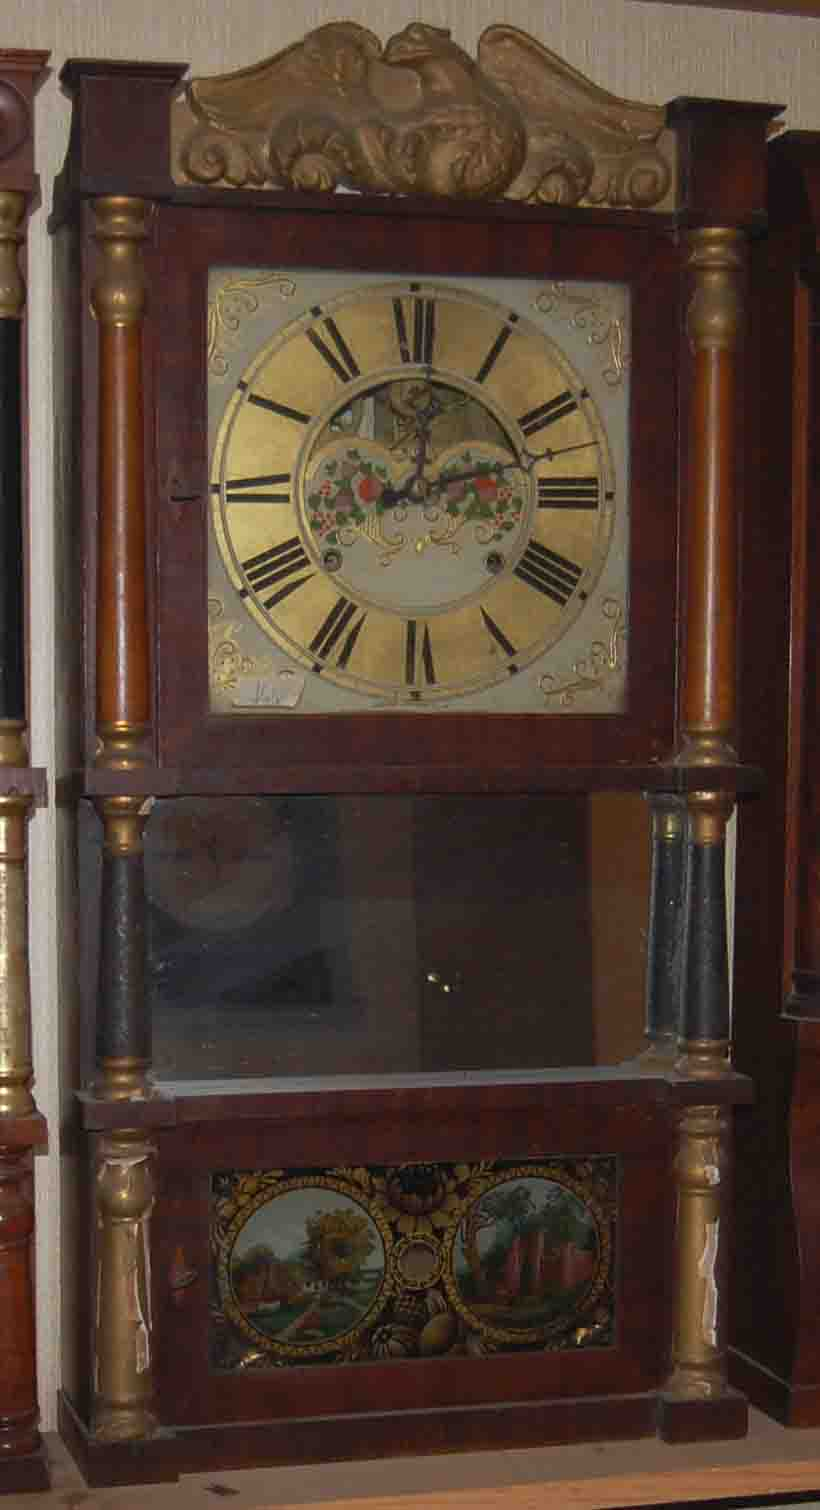 8 Day Weight Clocks Mackey S Clock Repair Parkersburg Wv